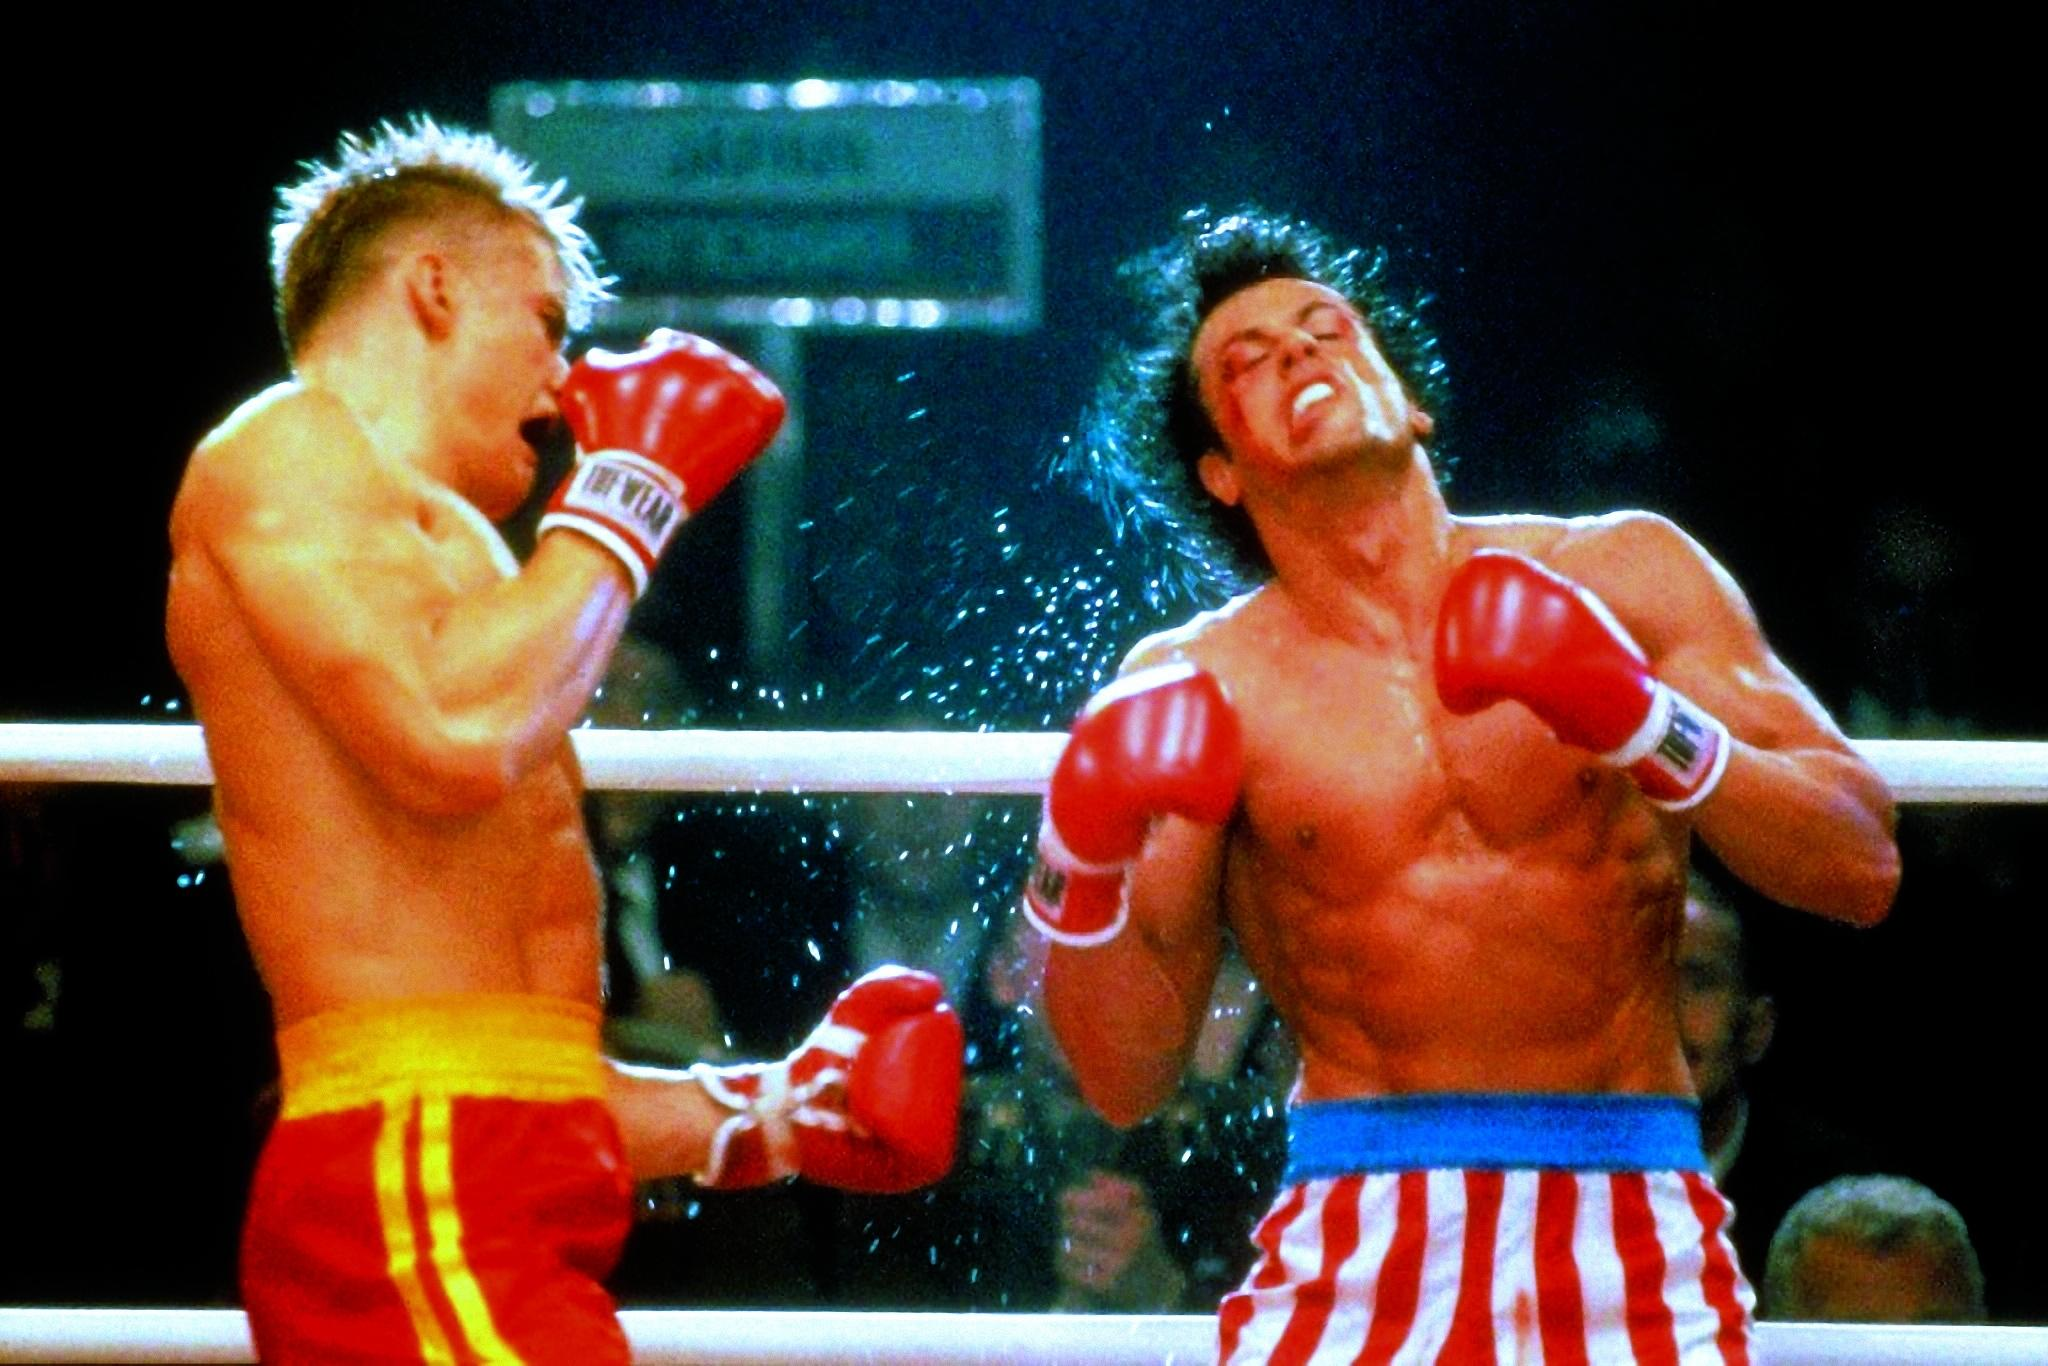 Klopp compared his club's duel against Manchester City to Rocky's epic bouts with Ivan Drago